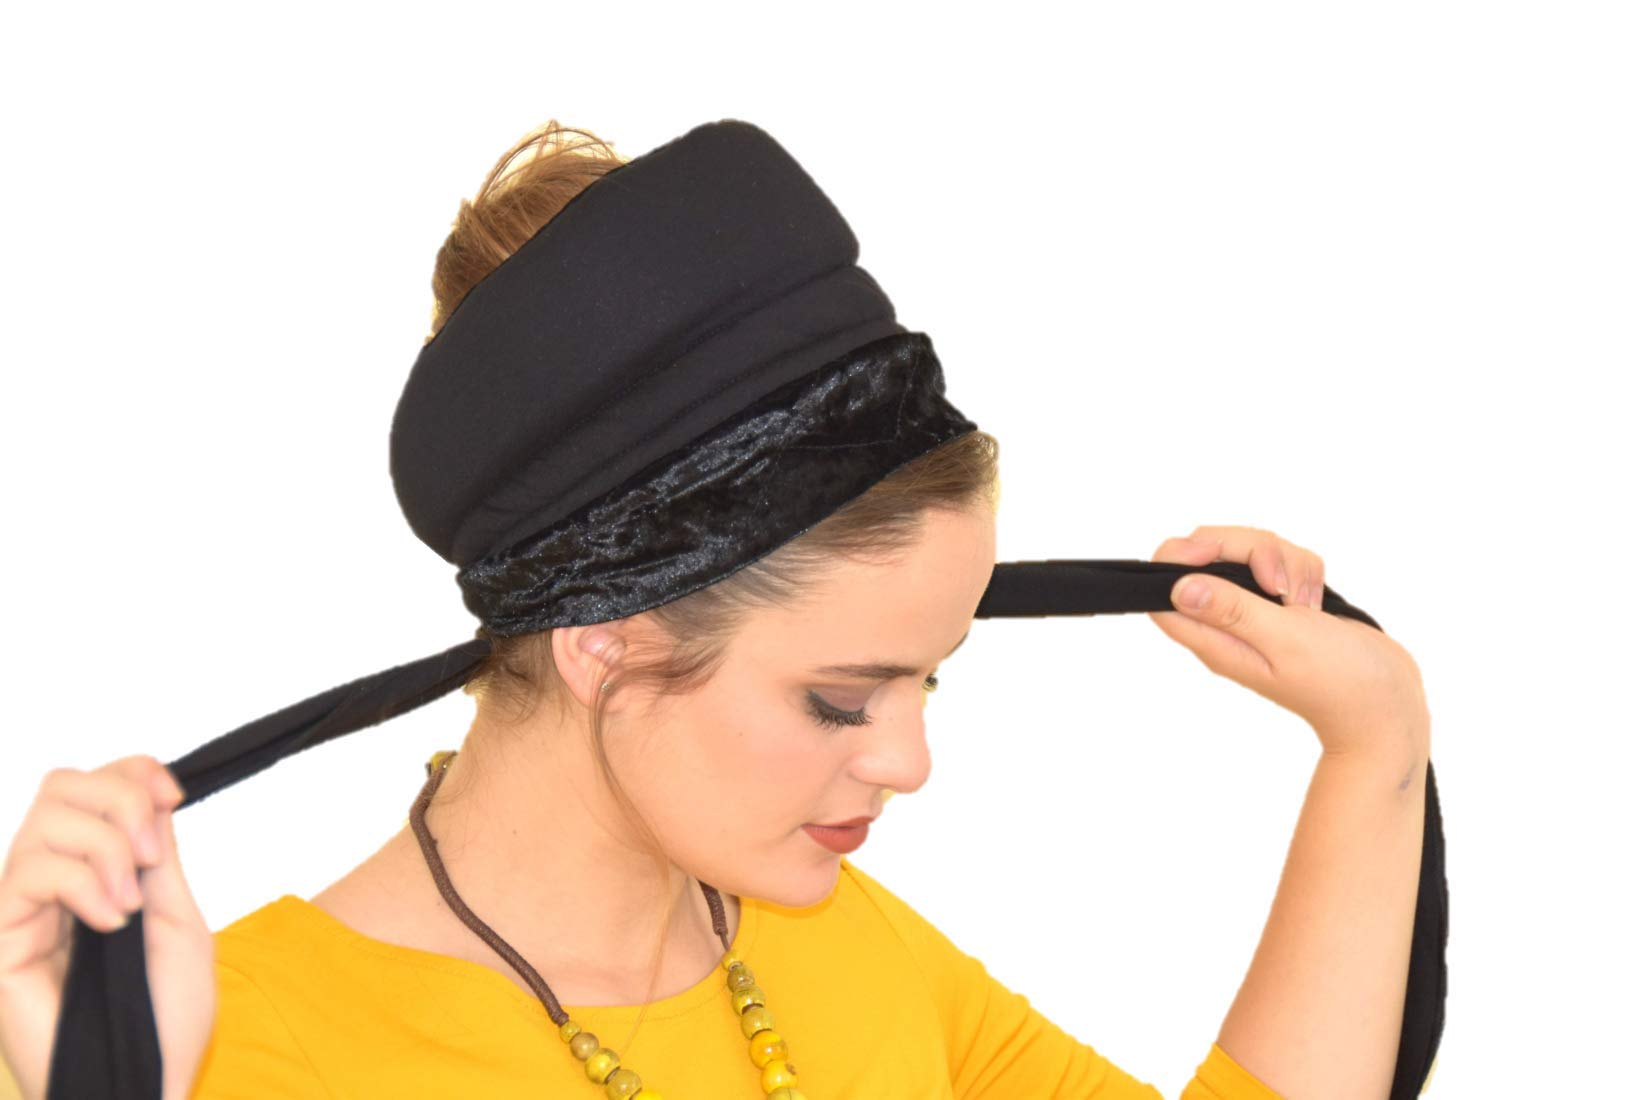 Sara Attali Design BoboBand, Big Volume & Non-Slip Headband Great under Headband Tichel Black